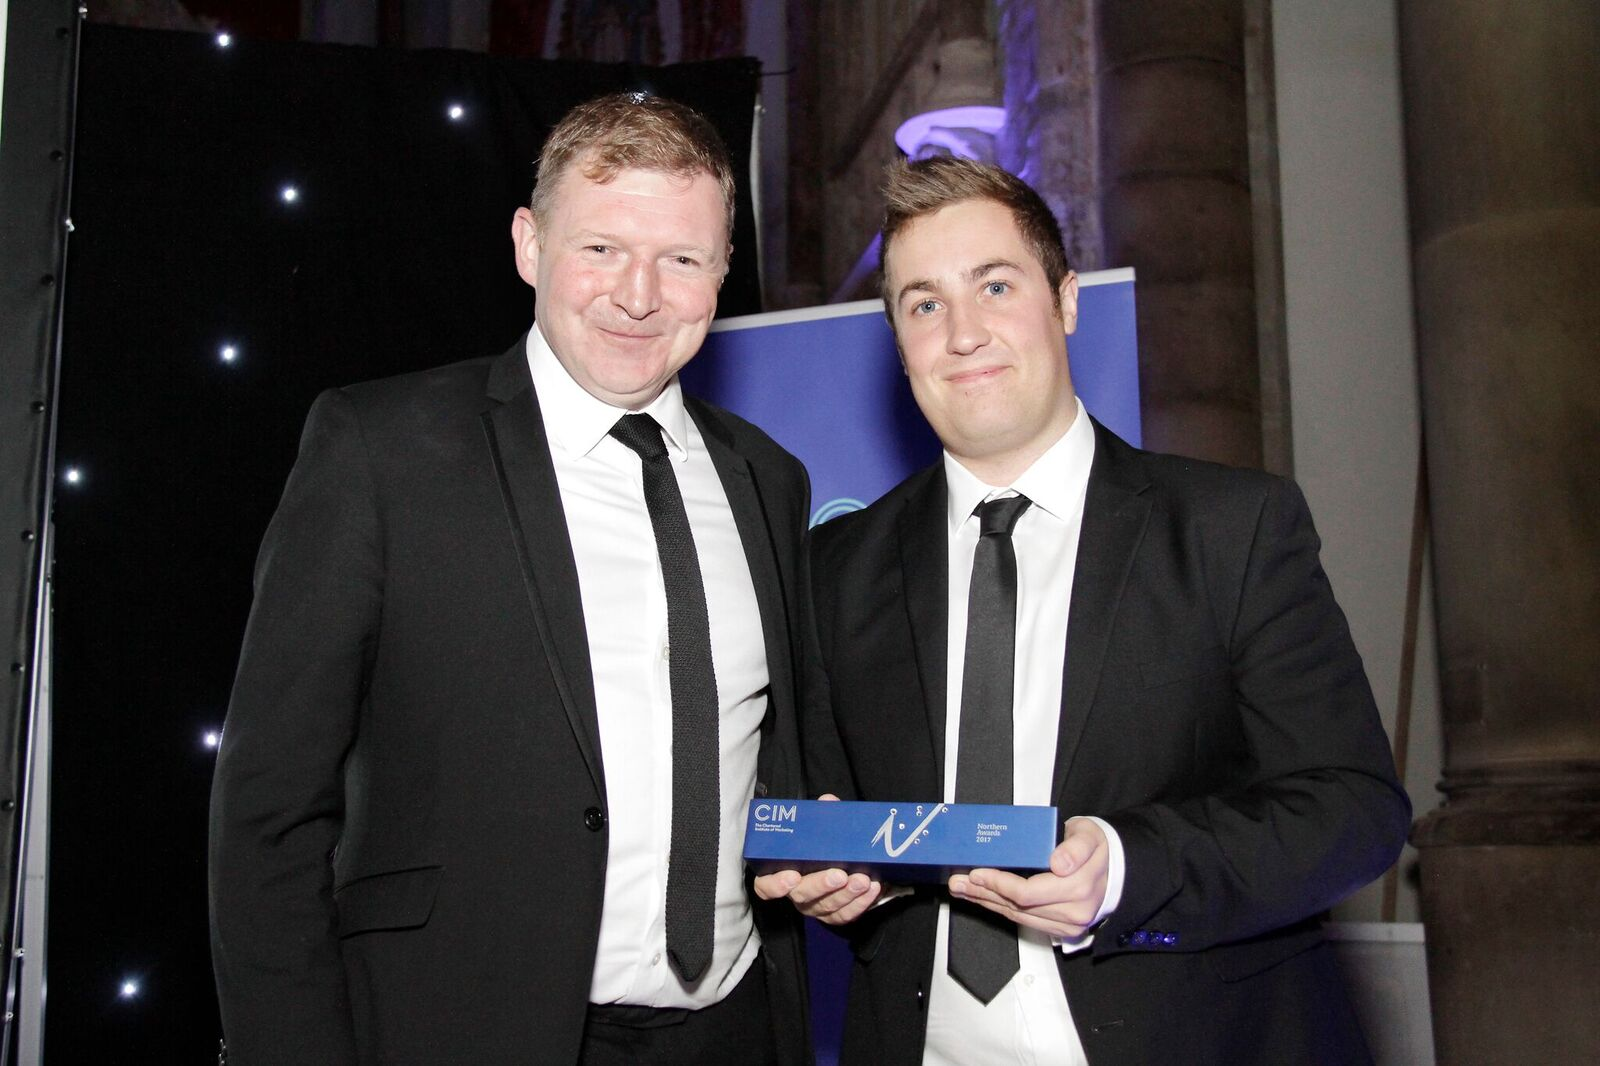 Phil Batty crowned Marketer of the Year 2017